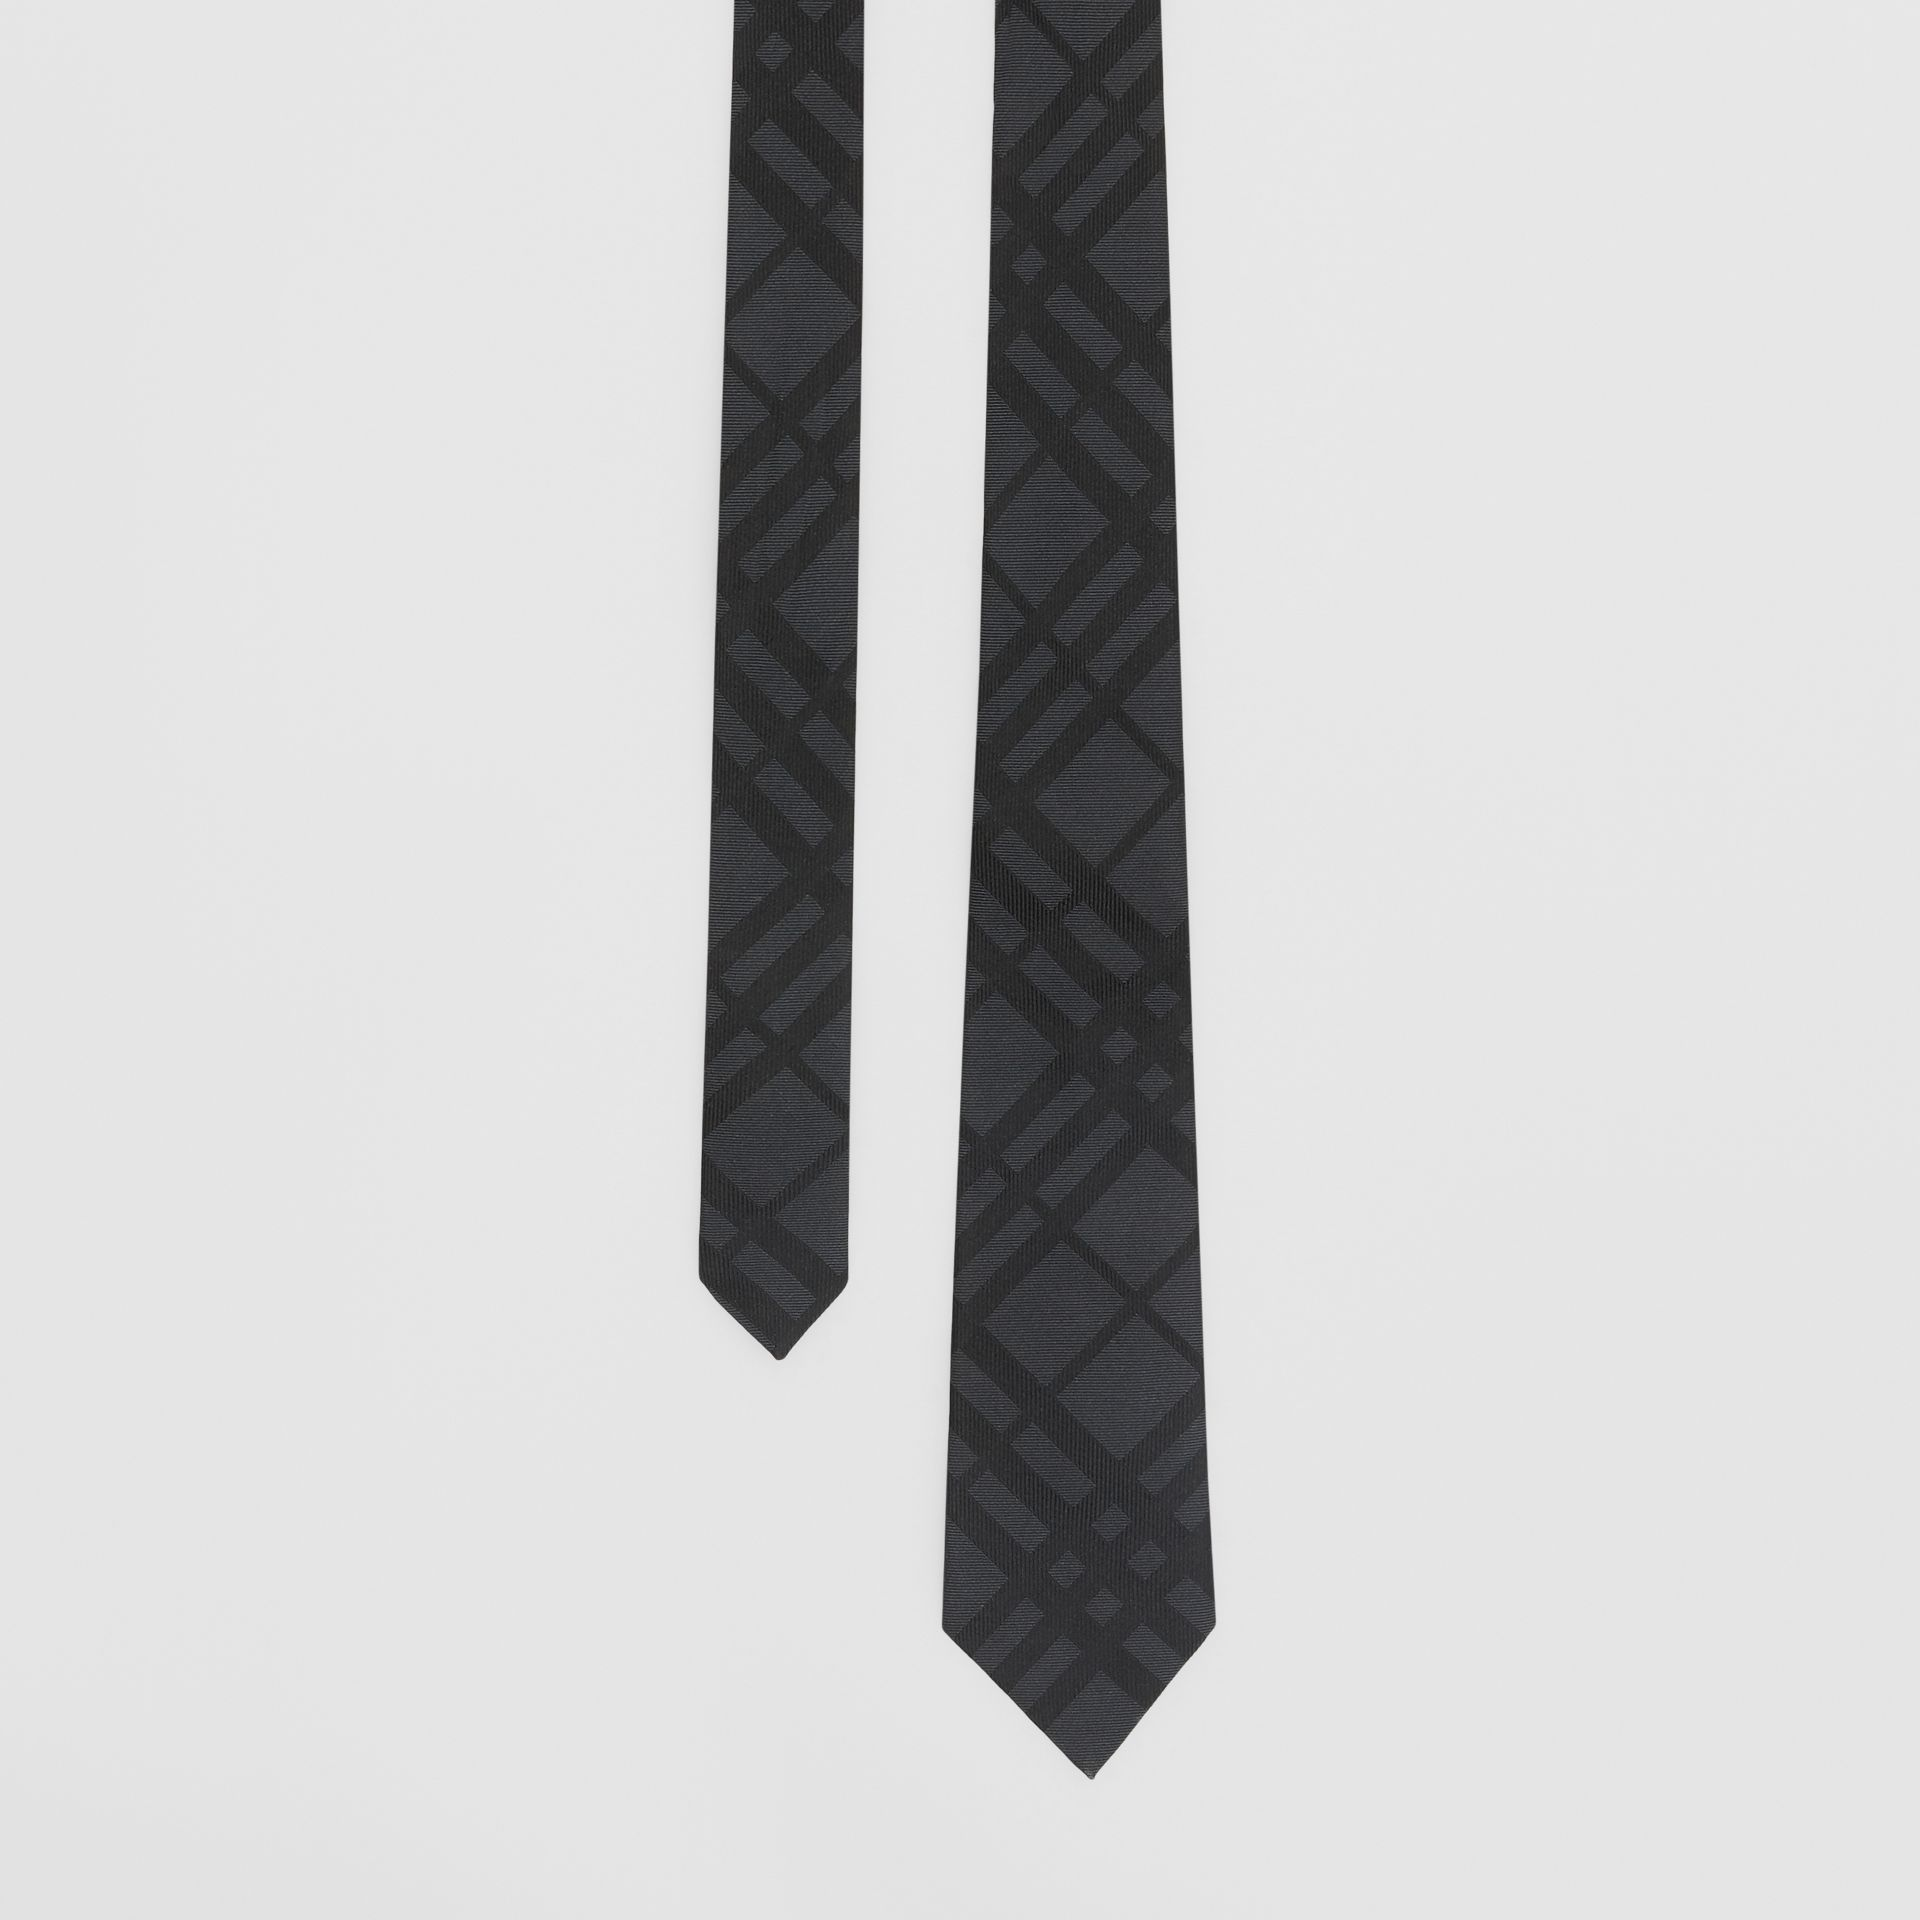 Classic Cut Check Silk Jacquard Tie in Charcoal - Men | Burberry Hong Kong S.A.R - gallery image 0